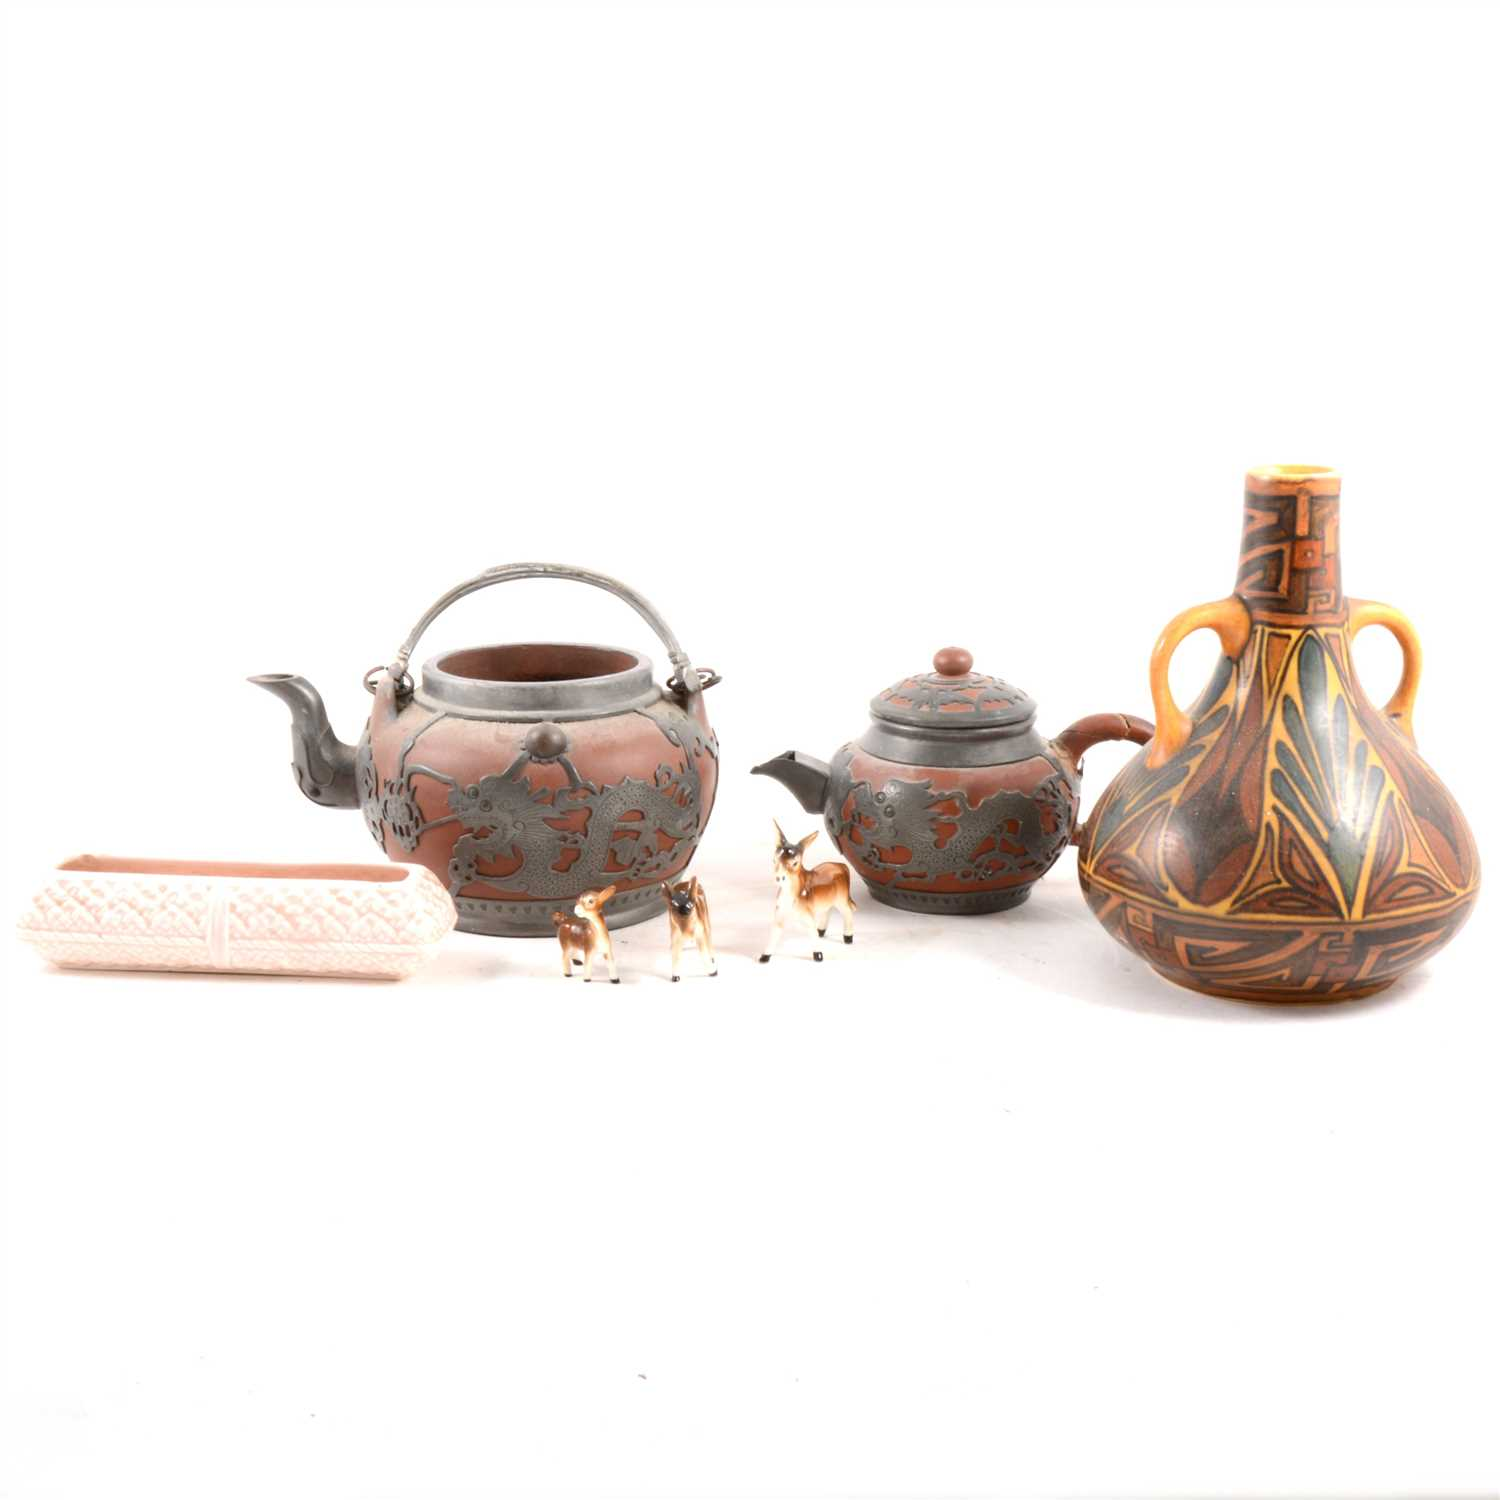 Lot 36-A Shelley part coffee set, three-piece Chinese terracotta base tea set, and other ceramics